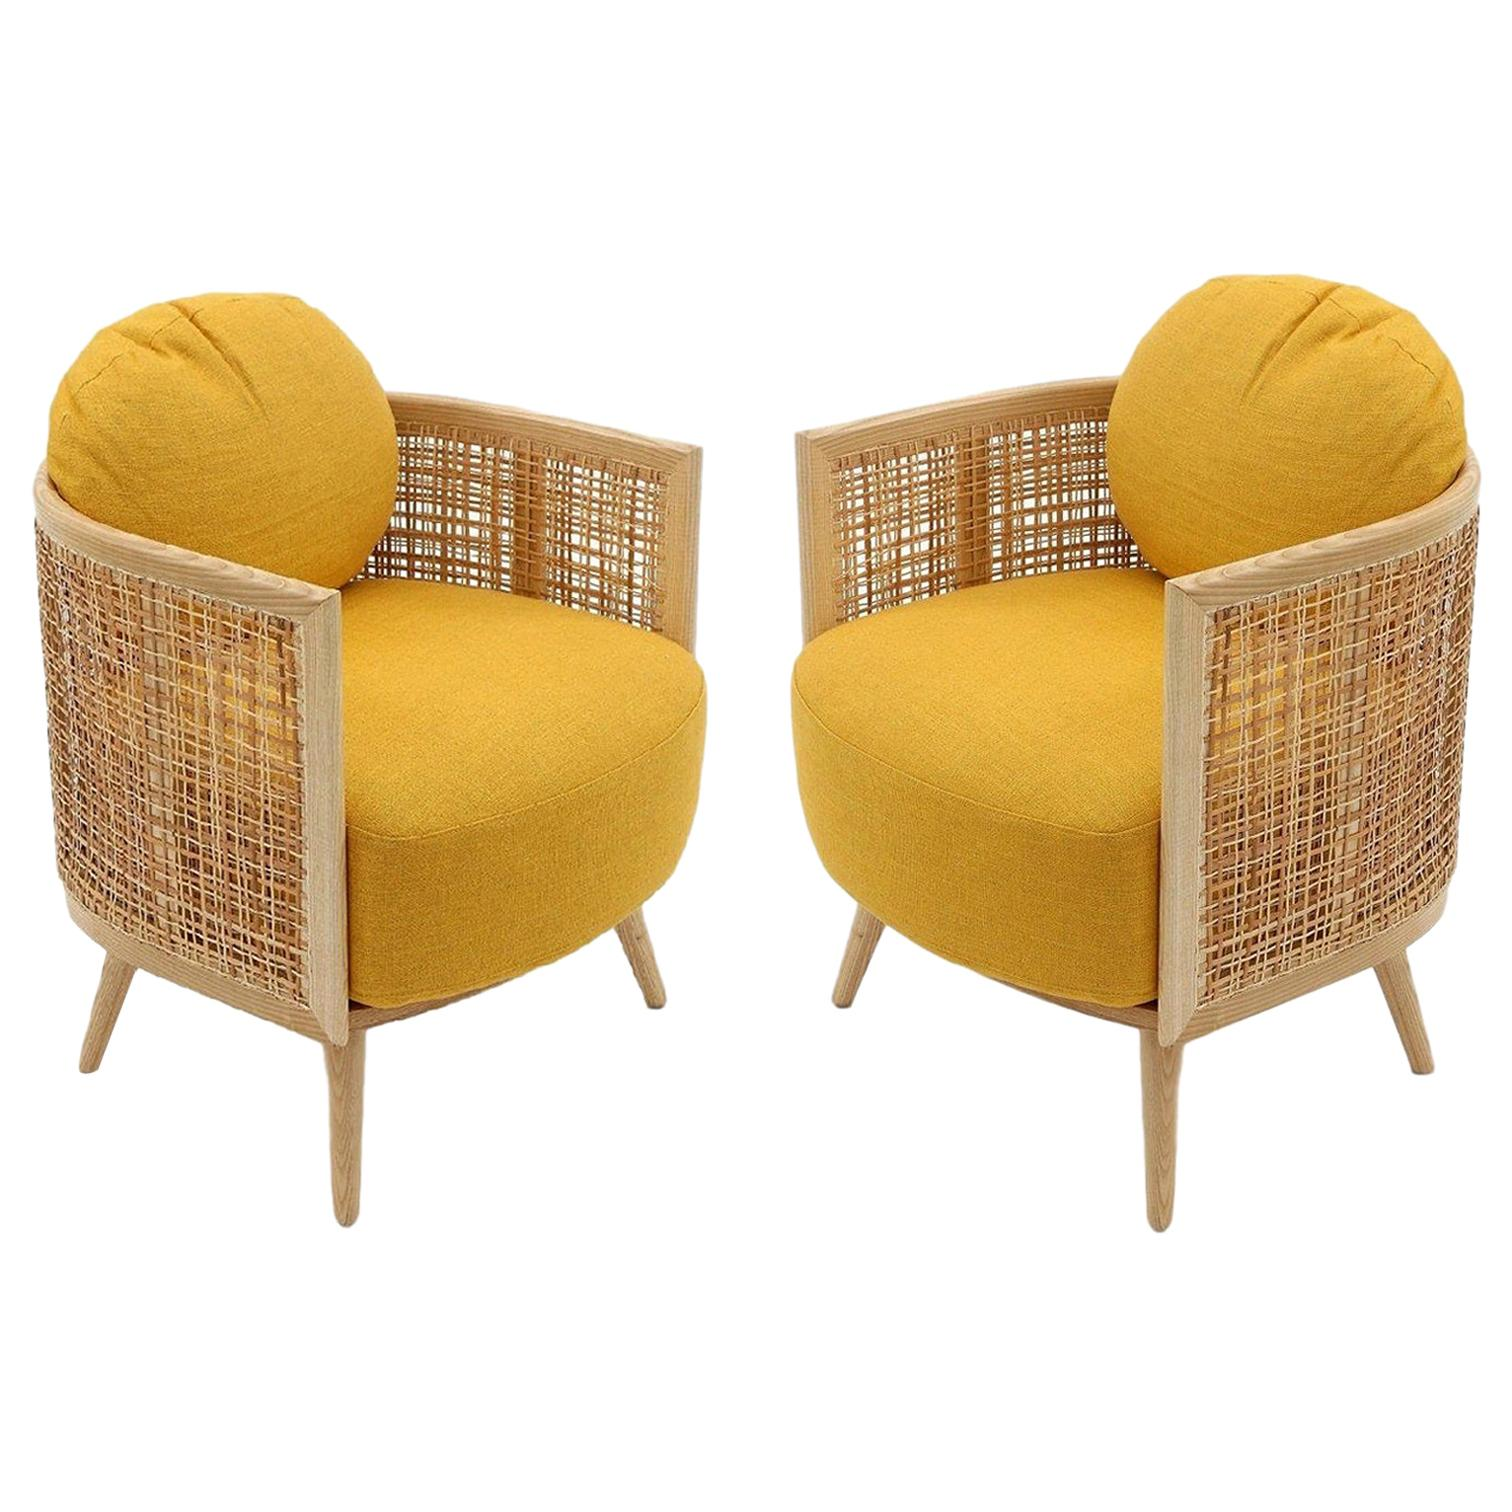 Contemporary Armchair in Natural Cane Webbing